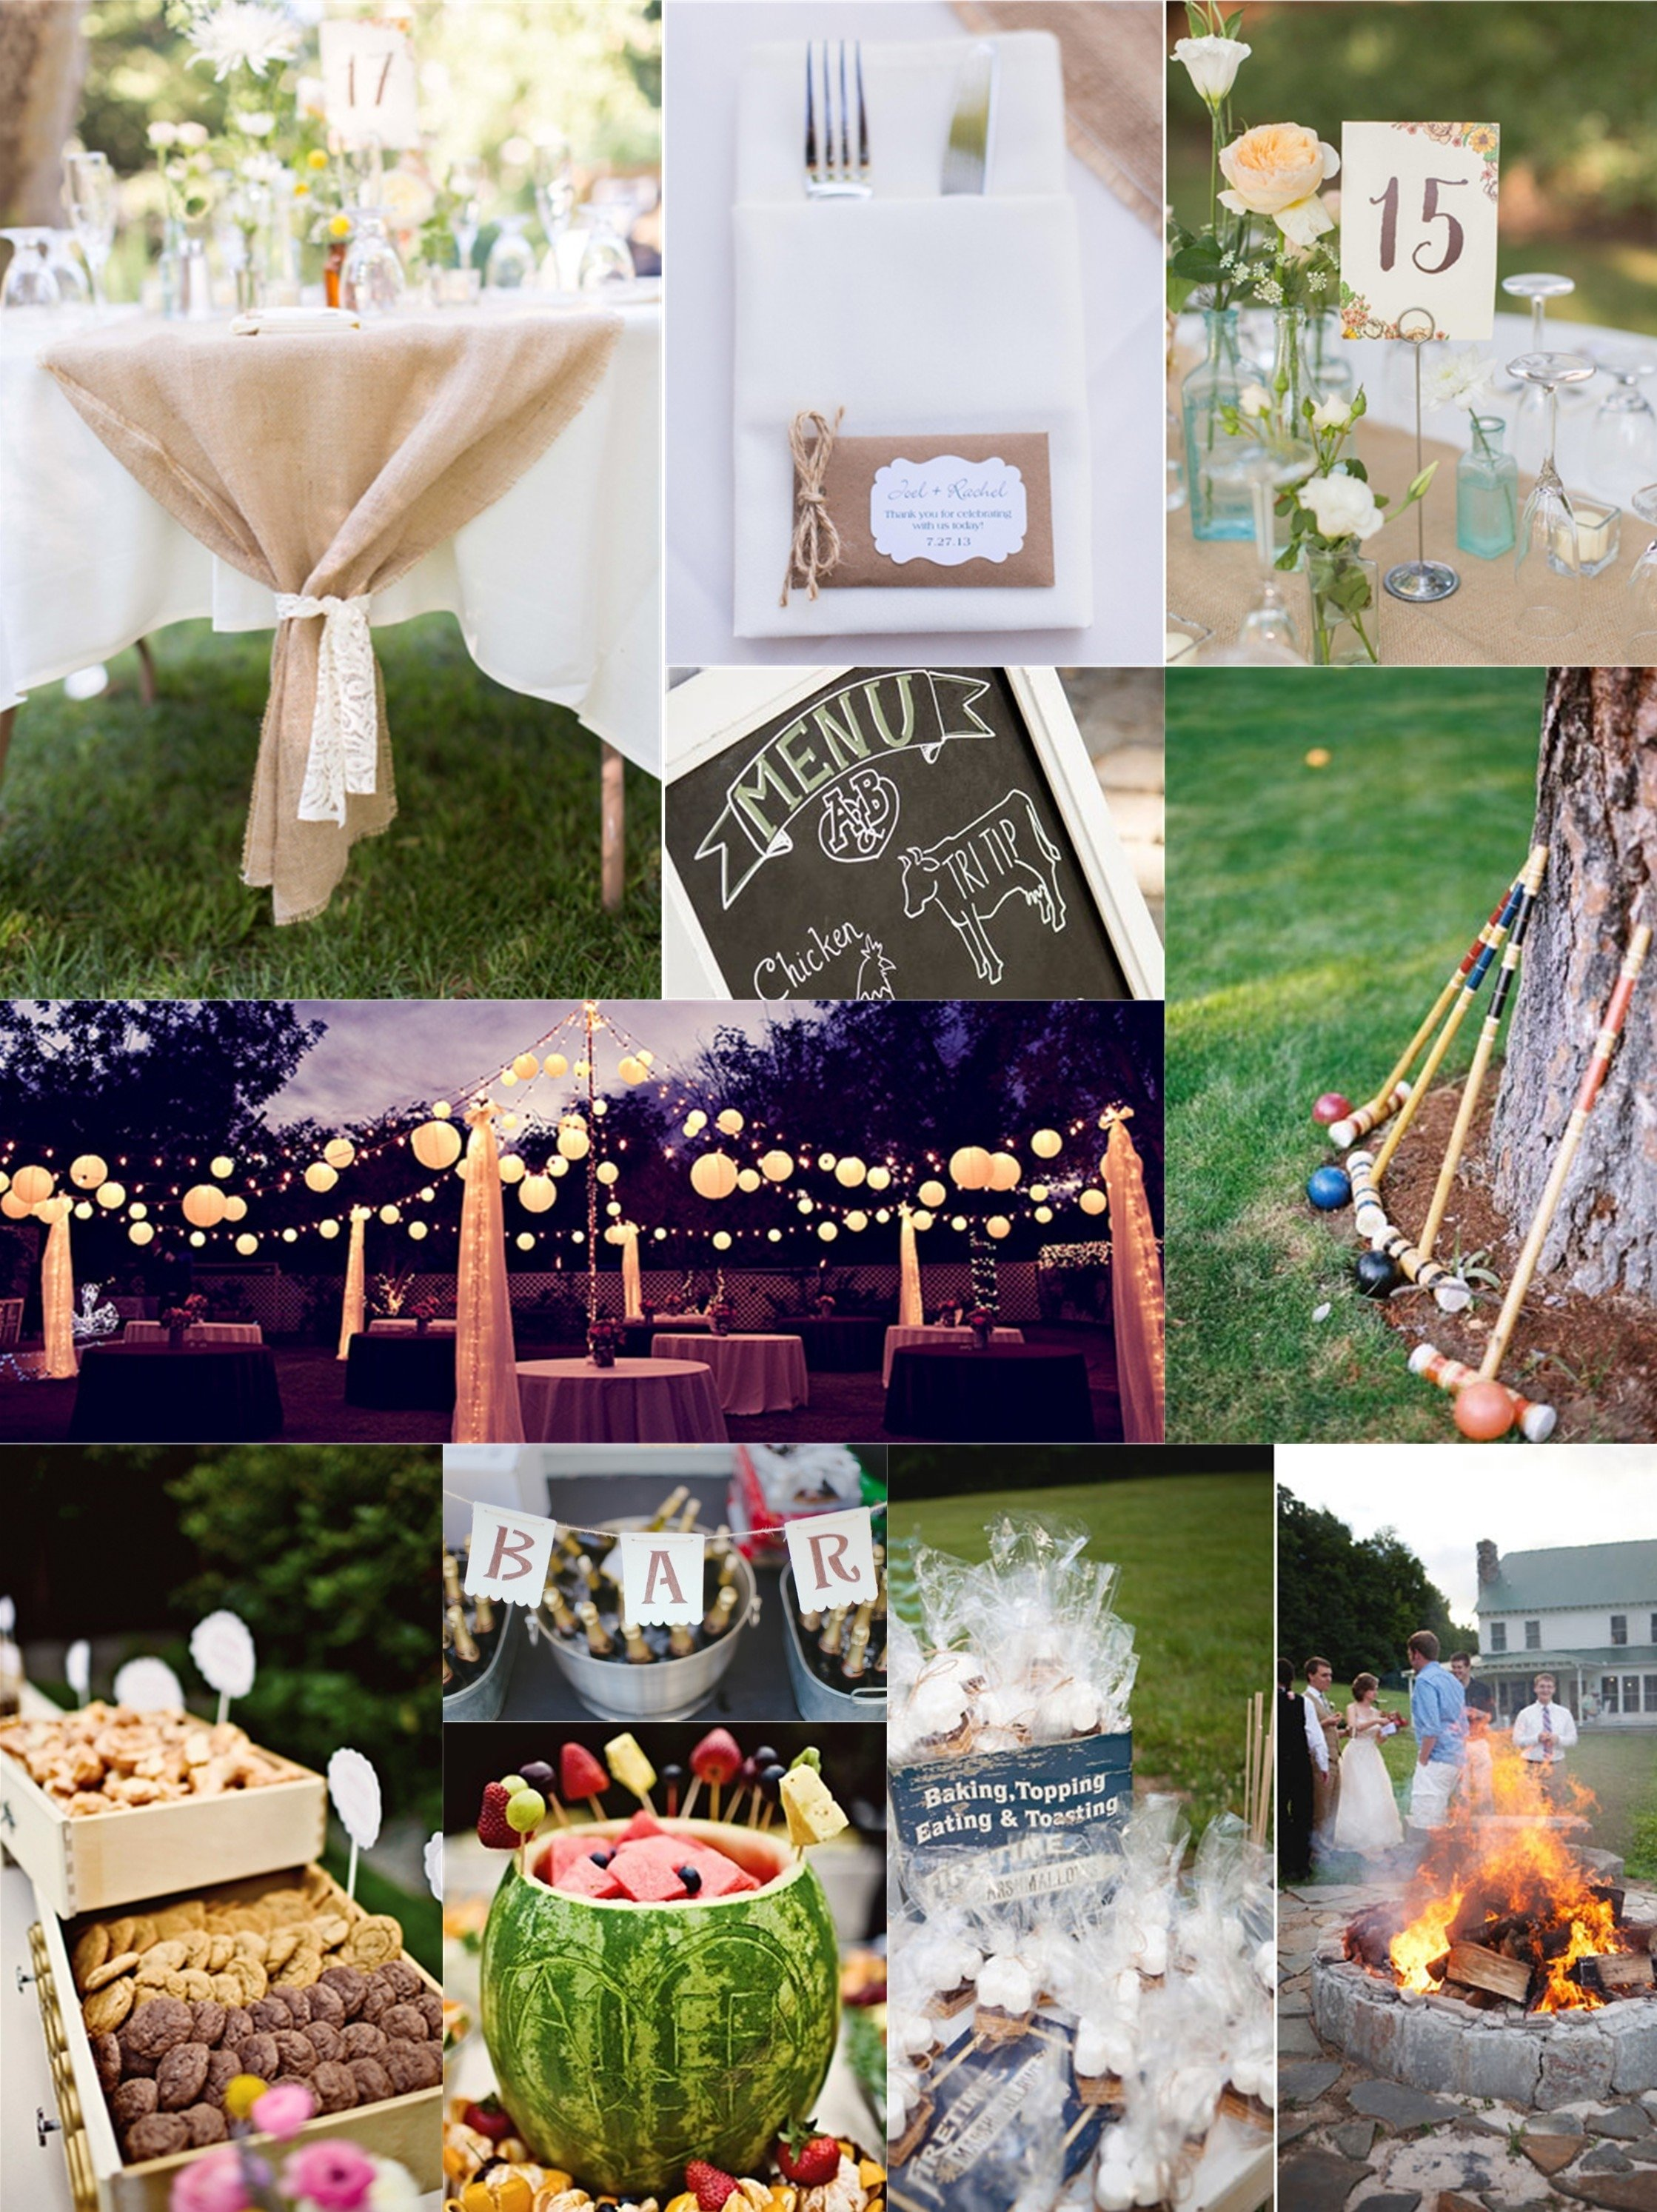 10 Attractive Wedding Ideas For Summer On A Budget incredible wedding ideas on a budget backyard wedding ideas on a 2 2020